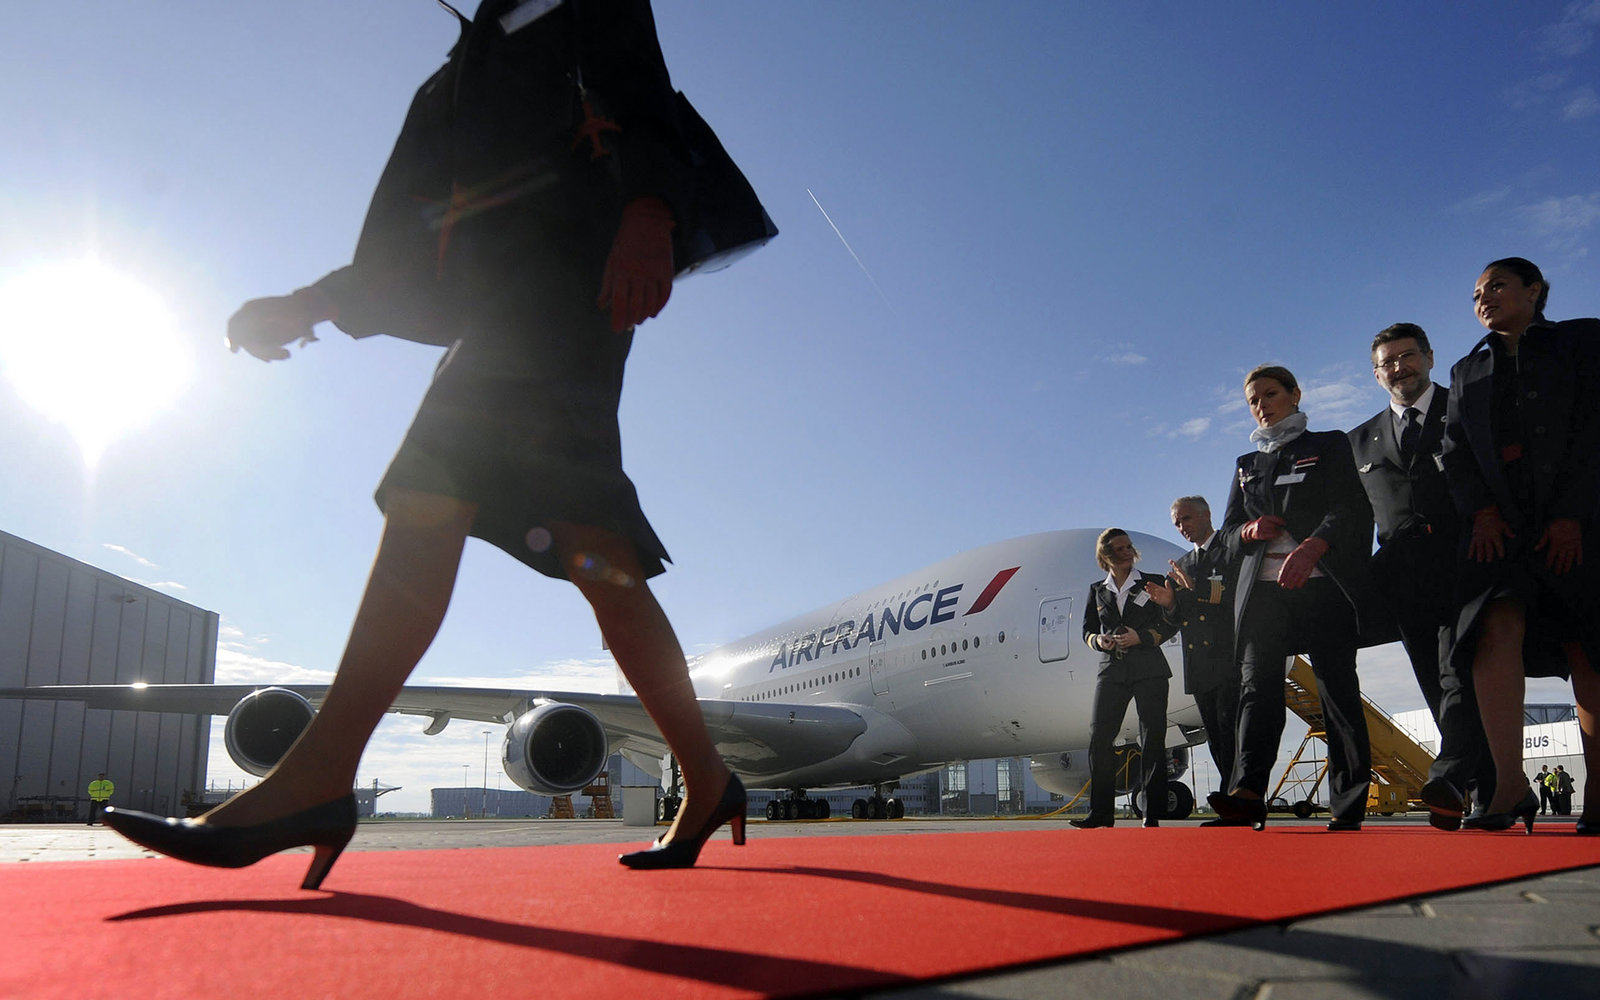 Air France plane with crew members